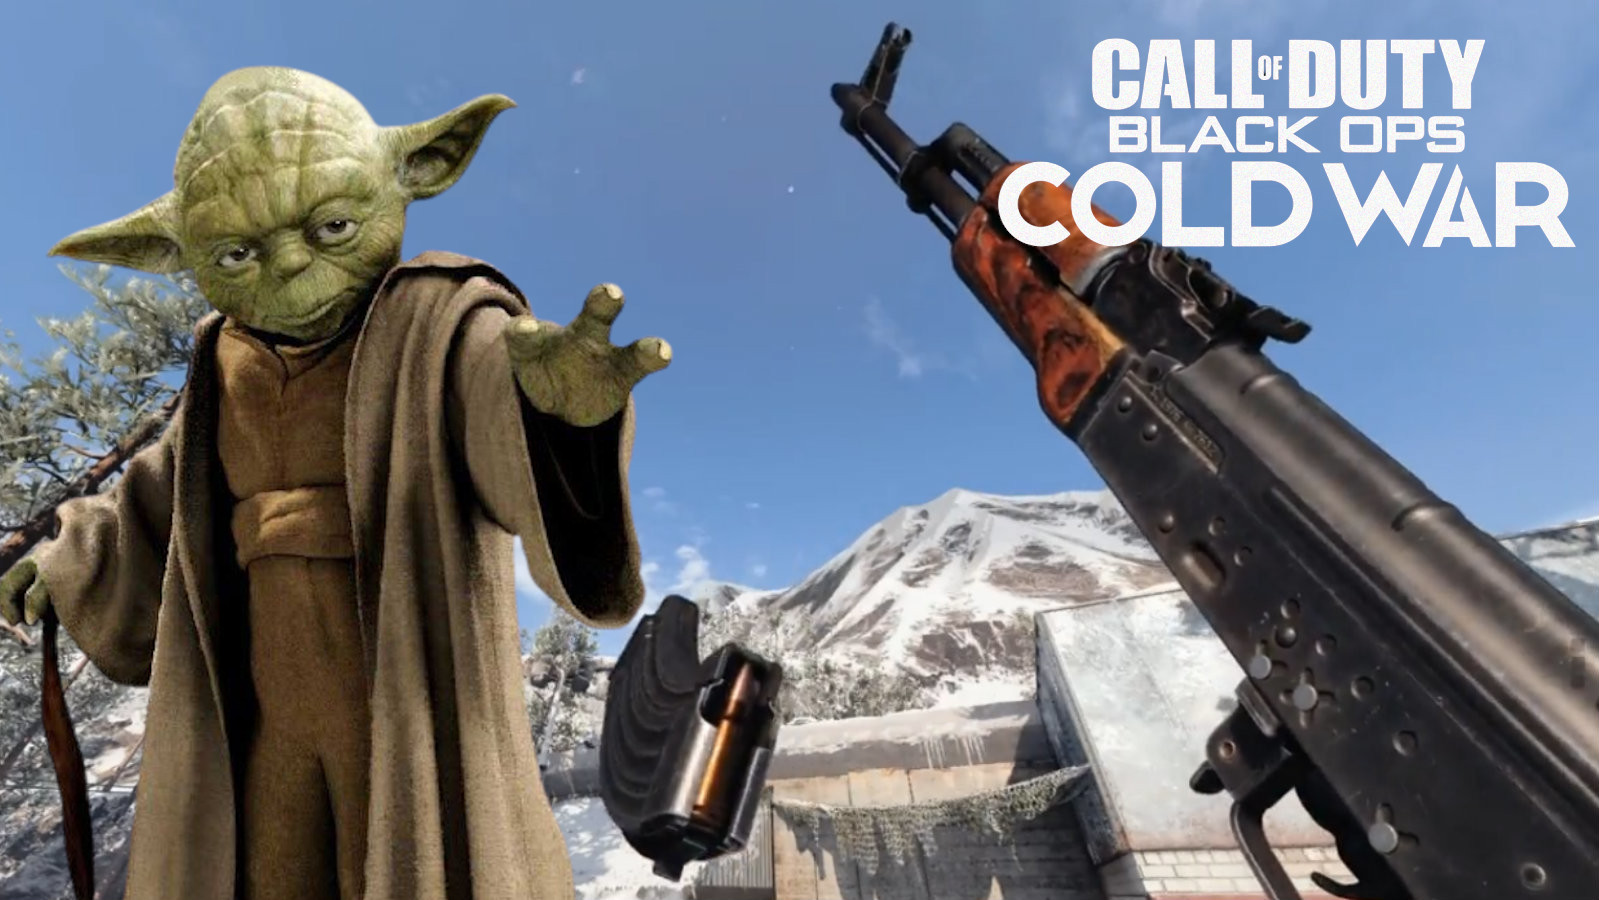 Yoda uses the force to reload gun in Black Ops Cold War